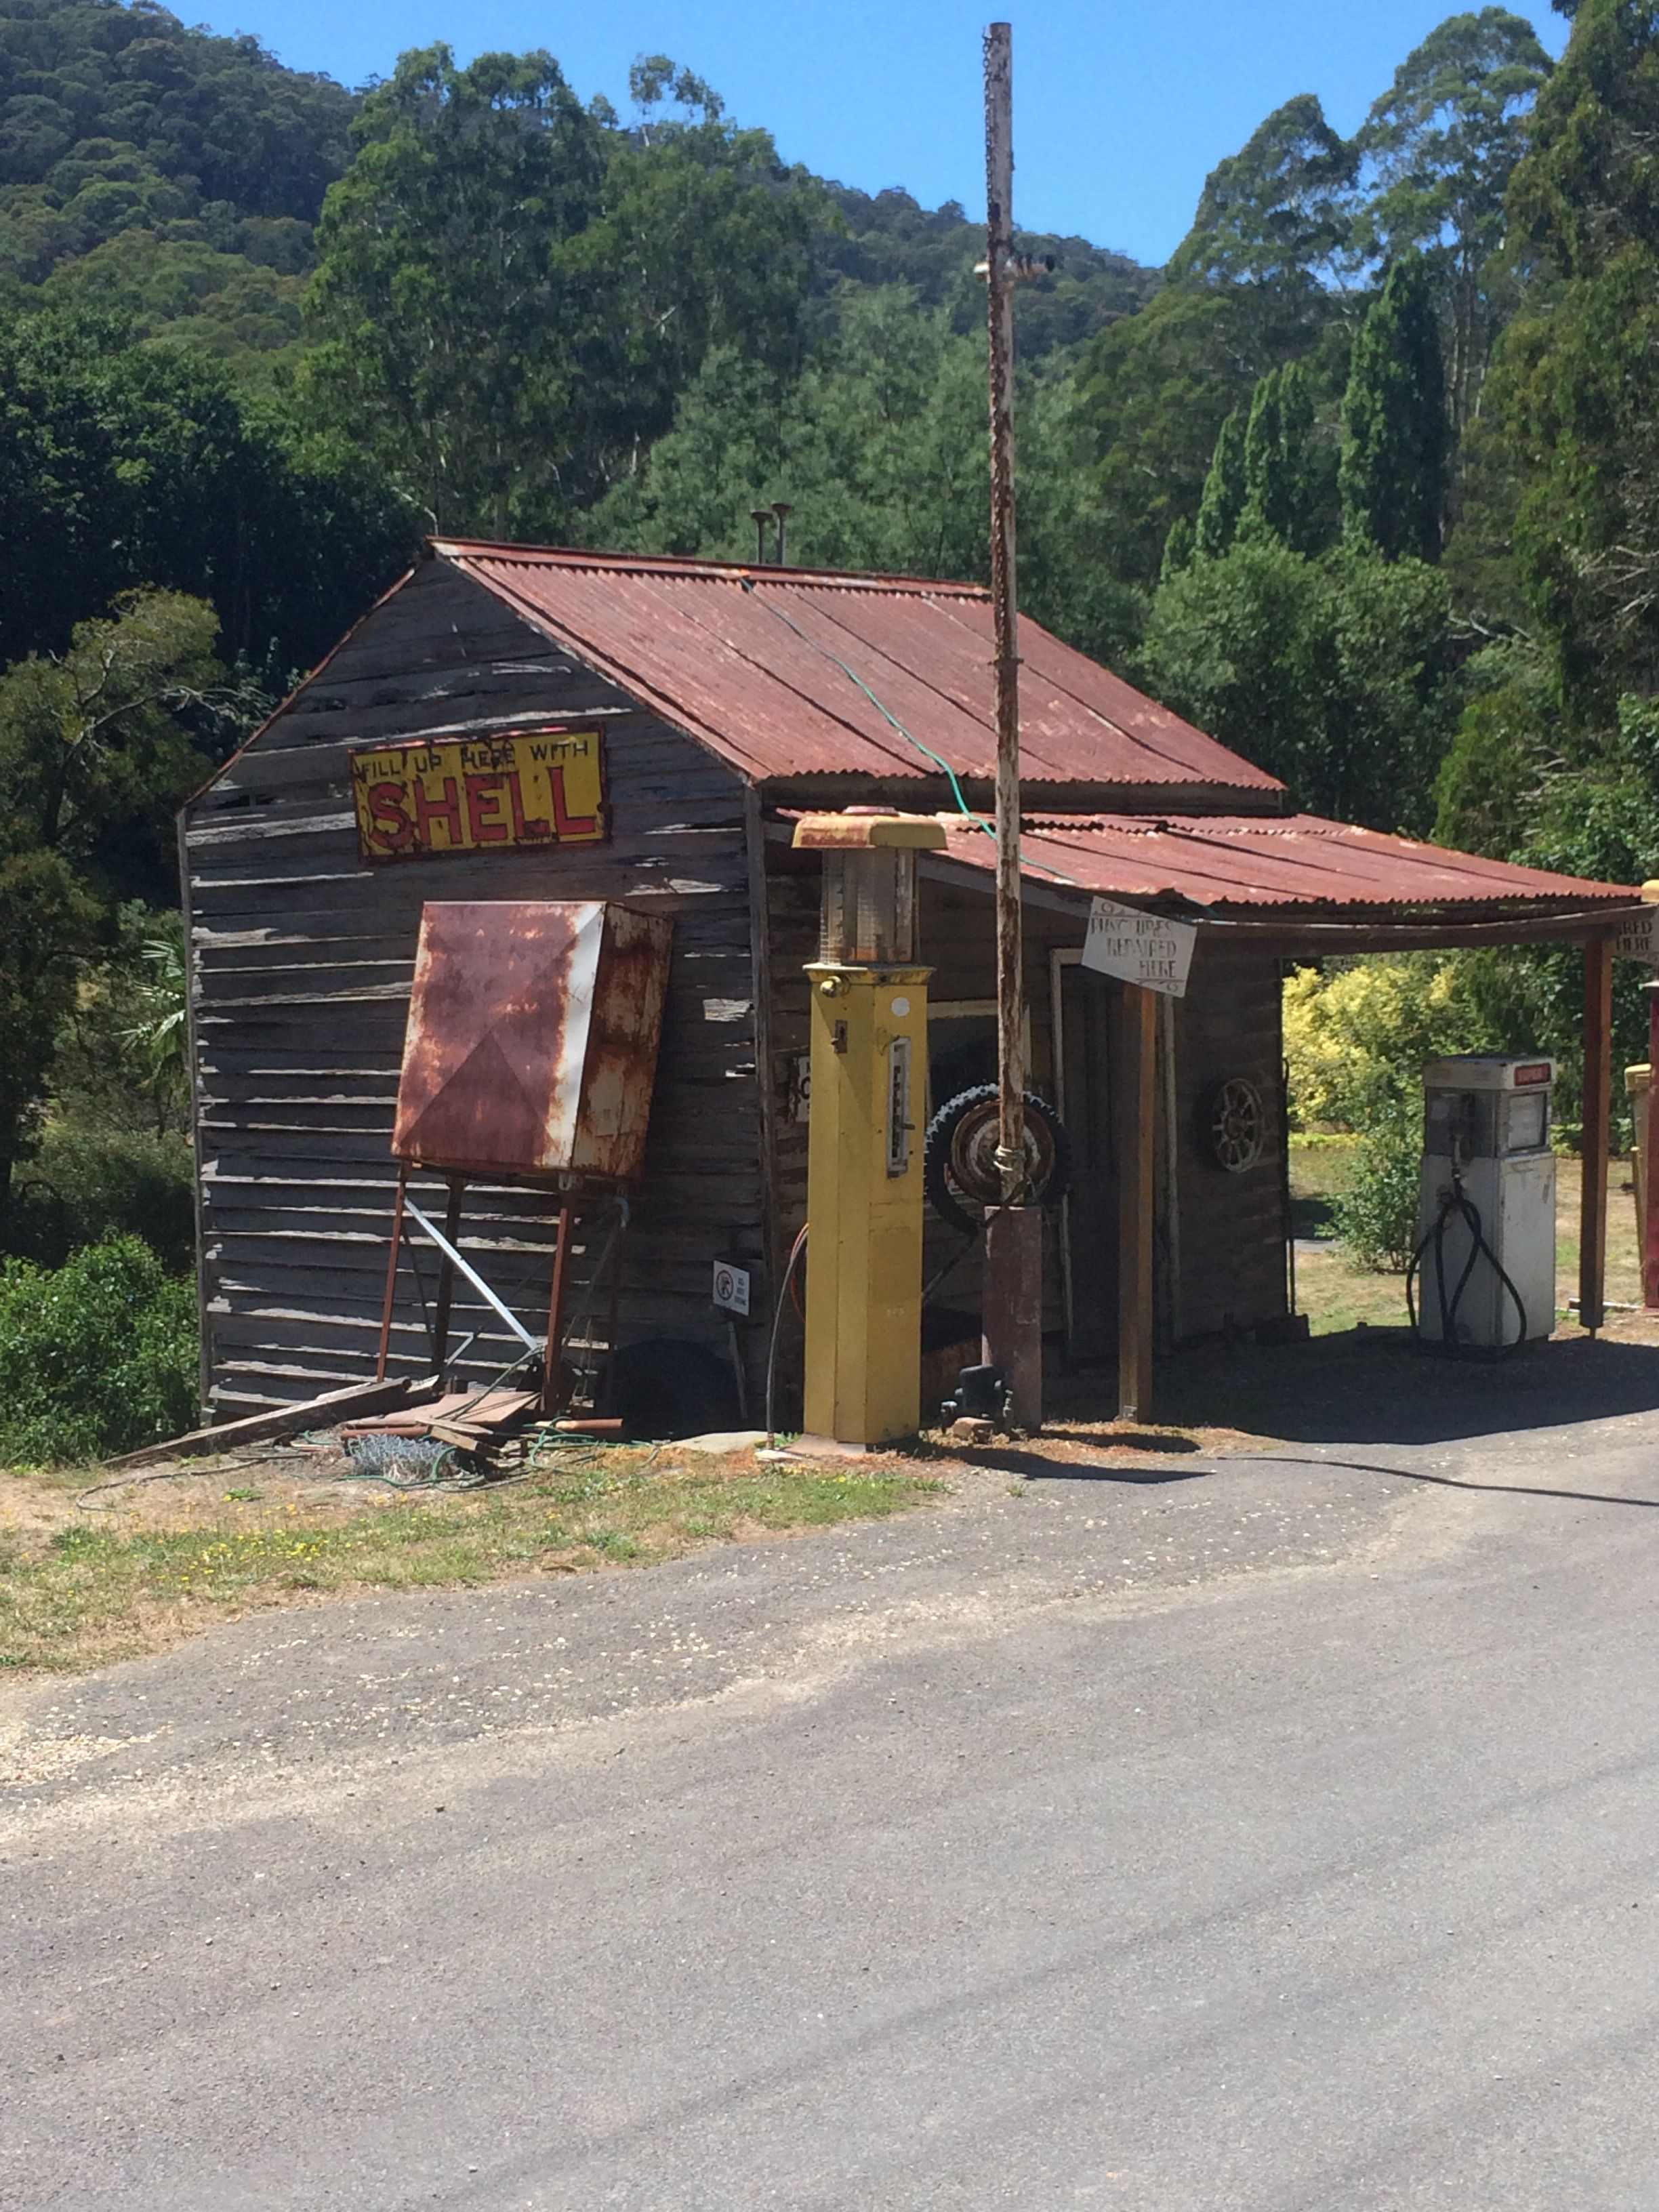 Woods point service station. Victorian high country. Still